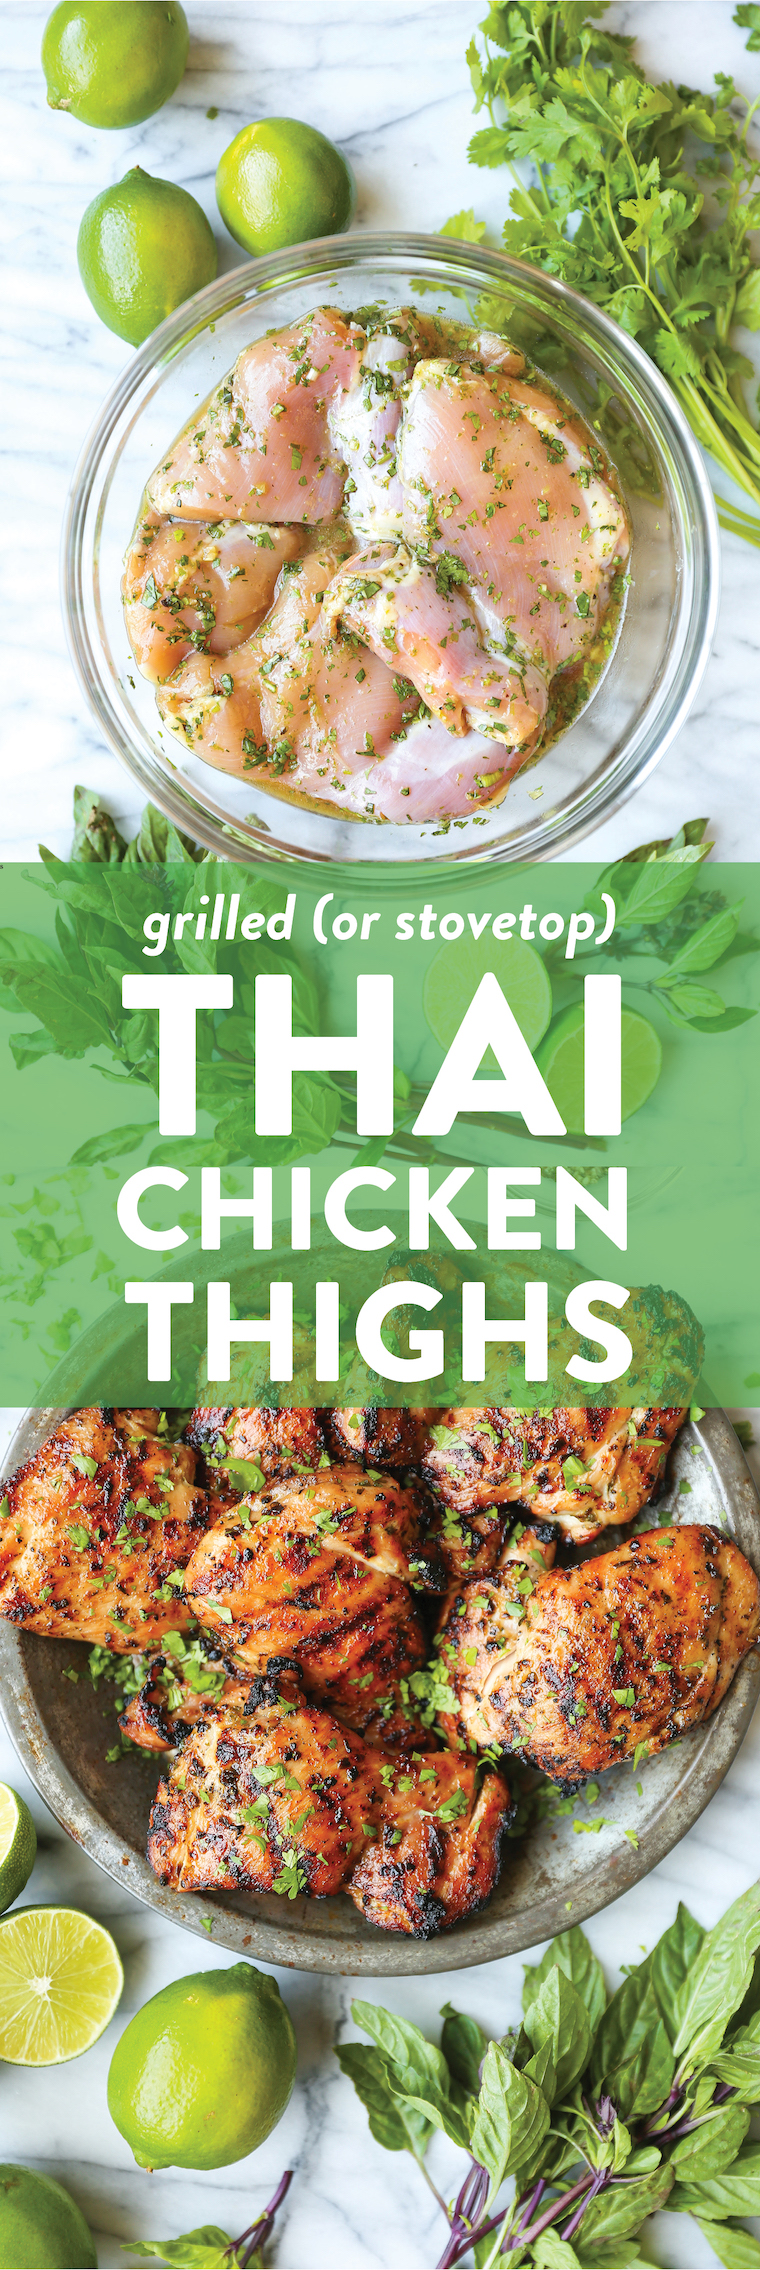 Thai Chicken Thighs - Cilantro, Thai basil, fish sauce, lime juice and brown sugar = best marinade ever. Grilled or cooked on a grill pan on the stovetop!